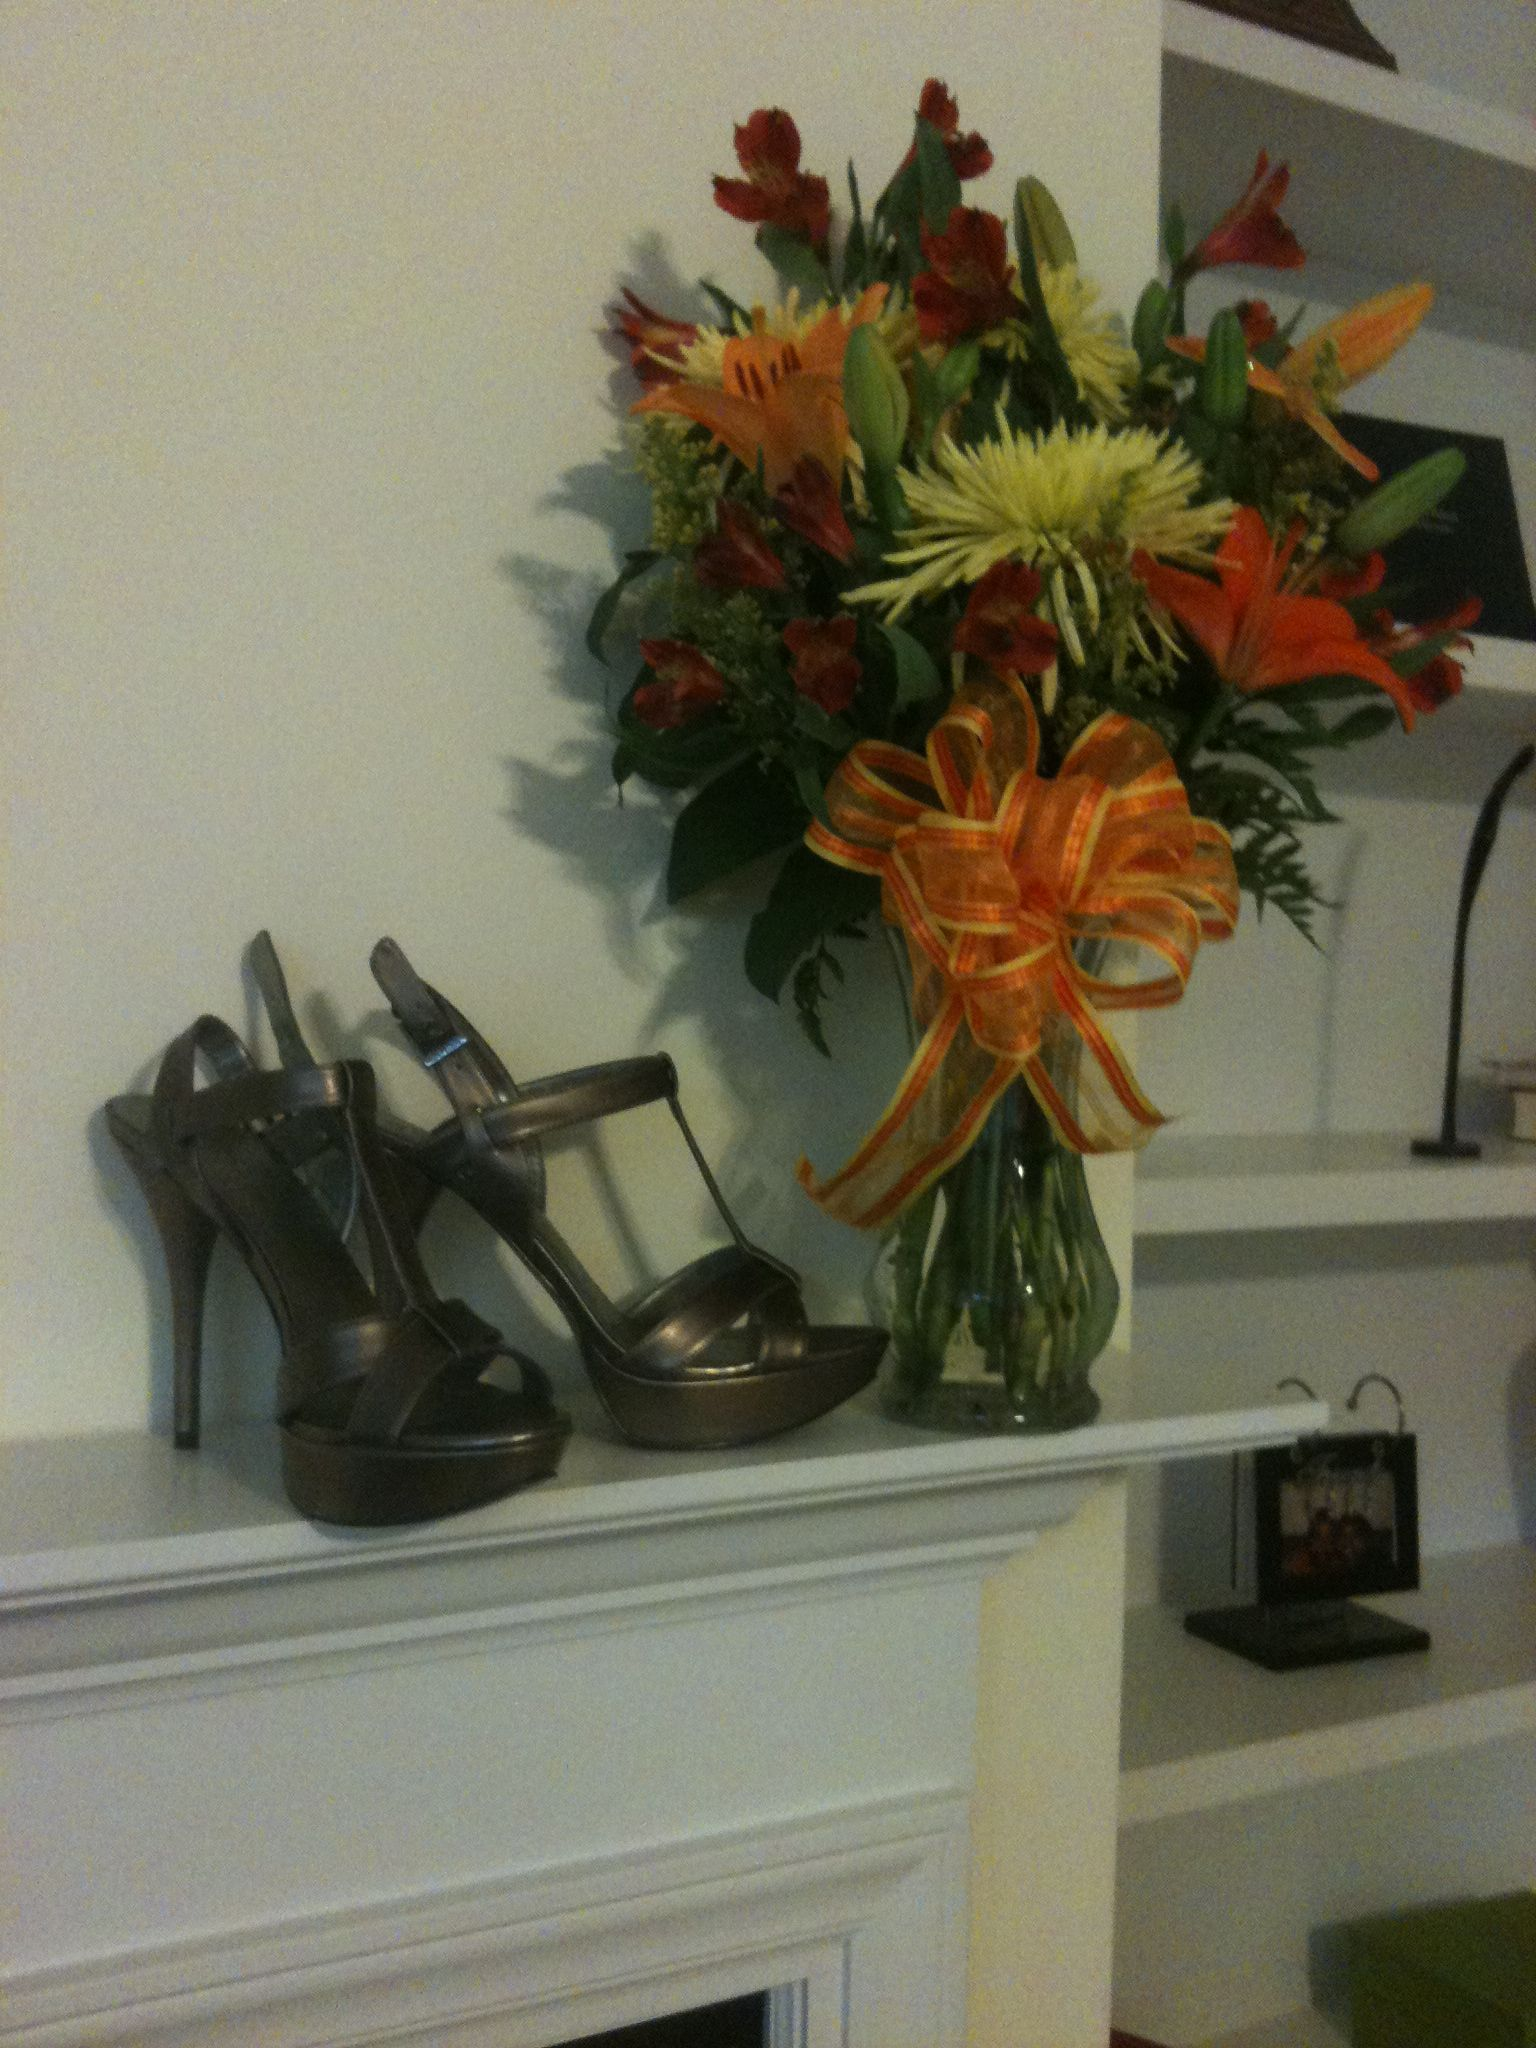 Beautiful flowers and hot shoes.  Now, that's a birthday!